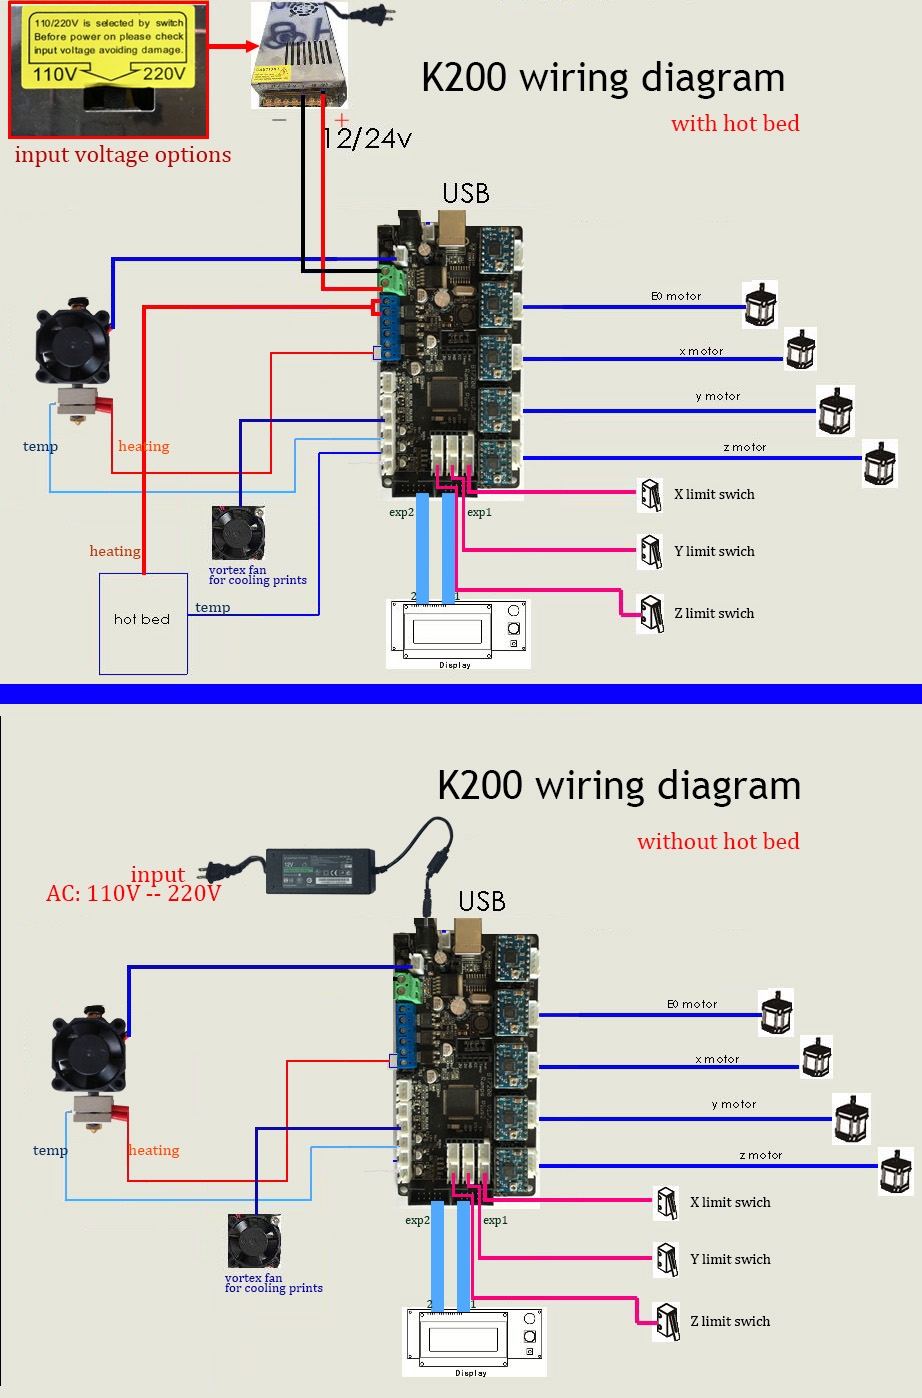 20 Amp 120 Volt Single Phase Receptacle Plug Wiring Diagram